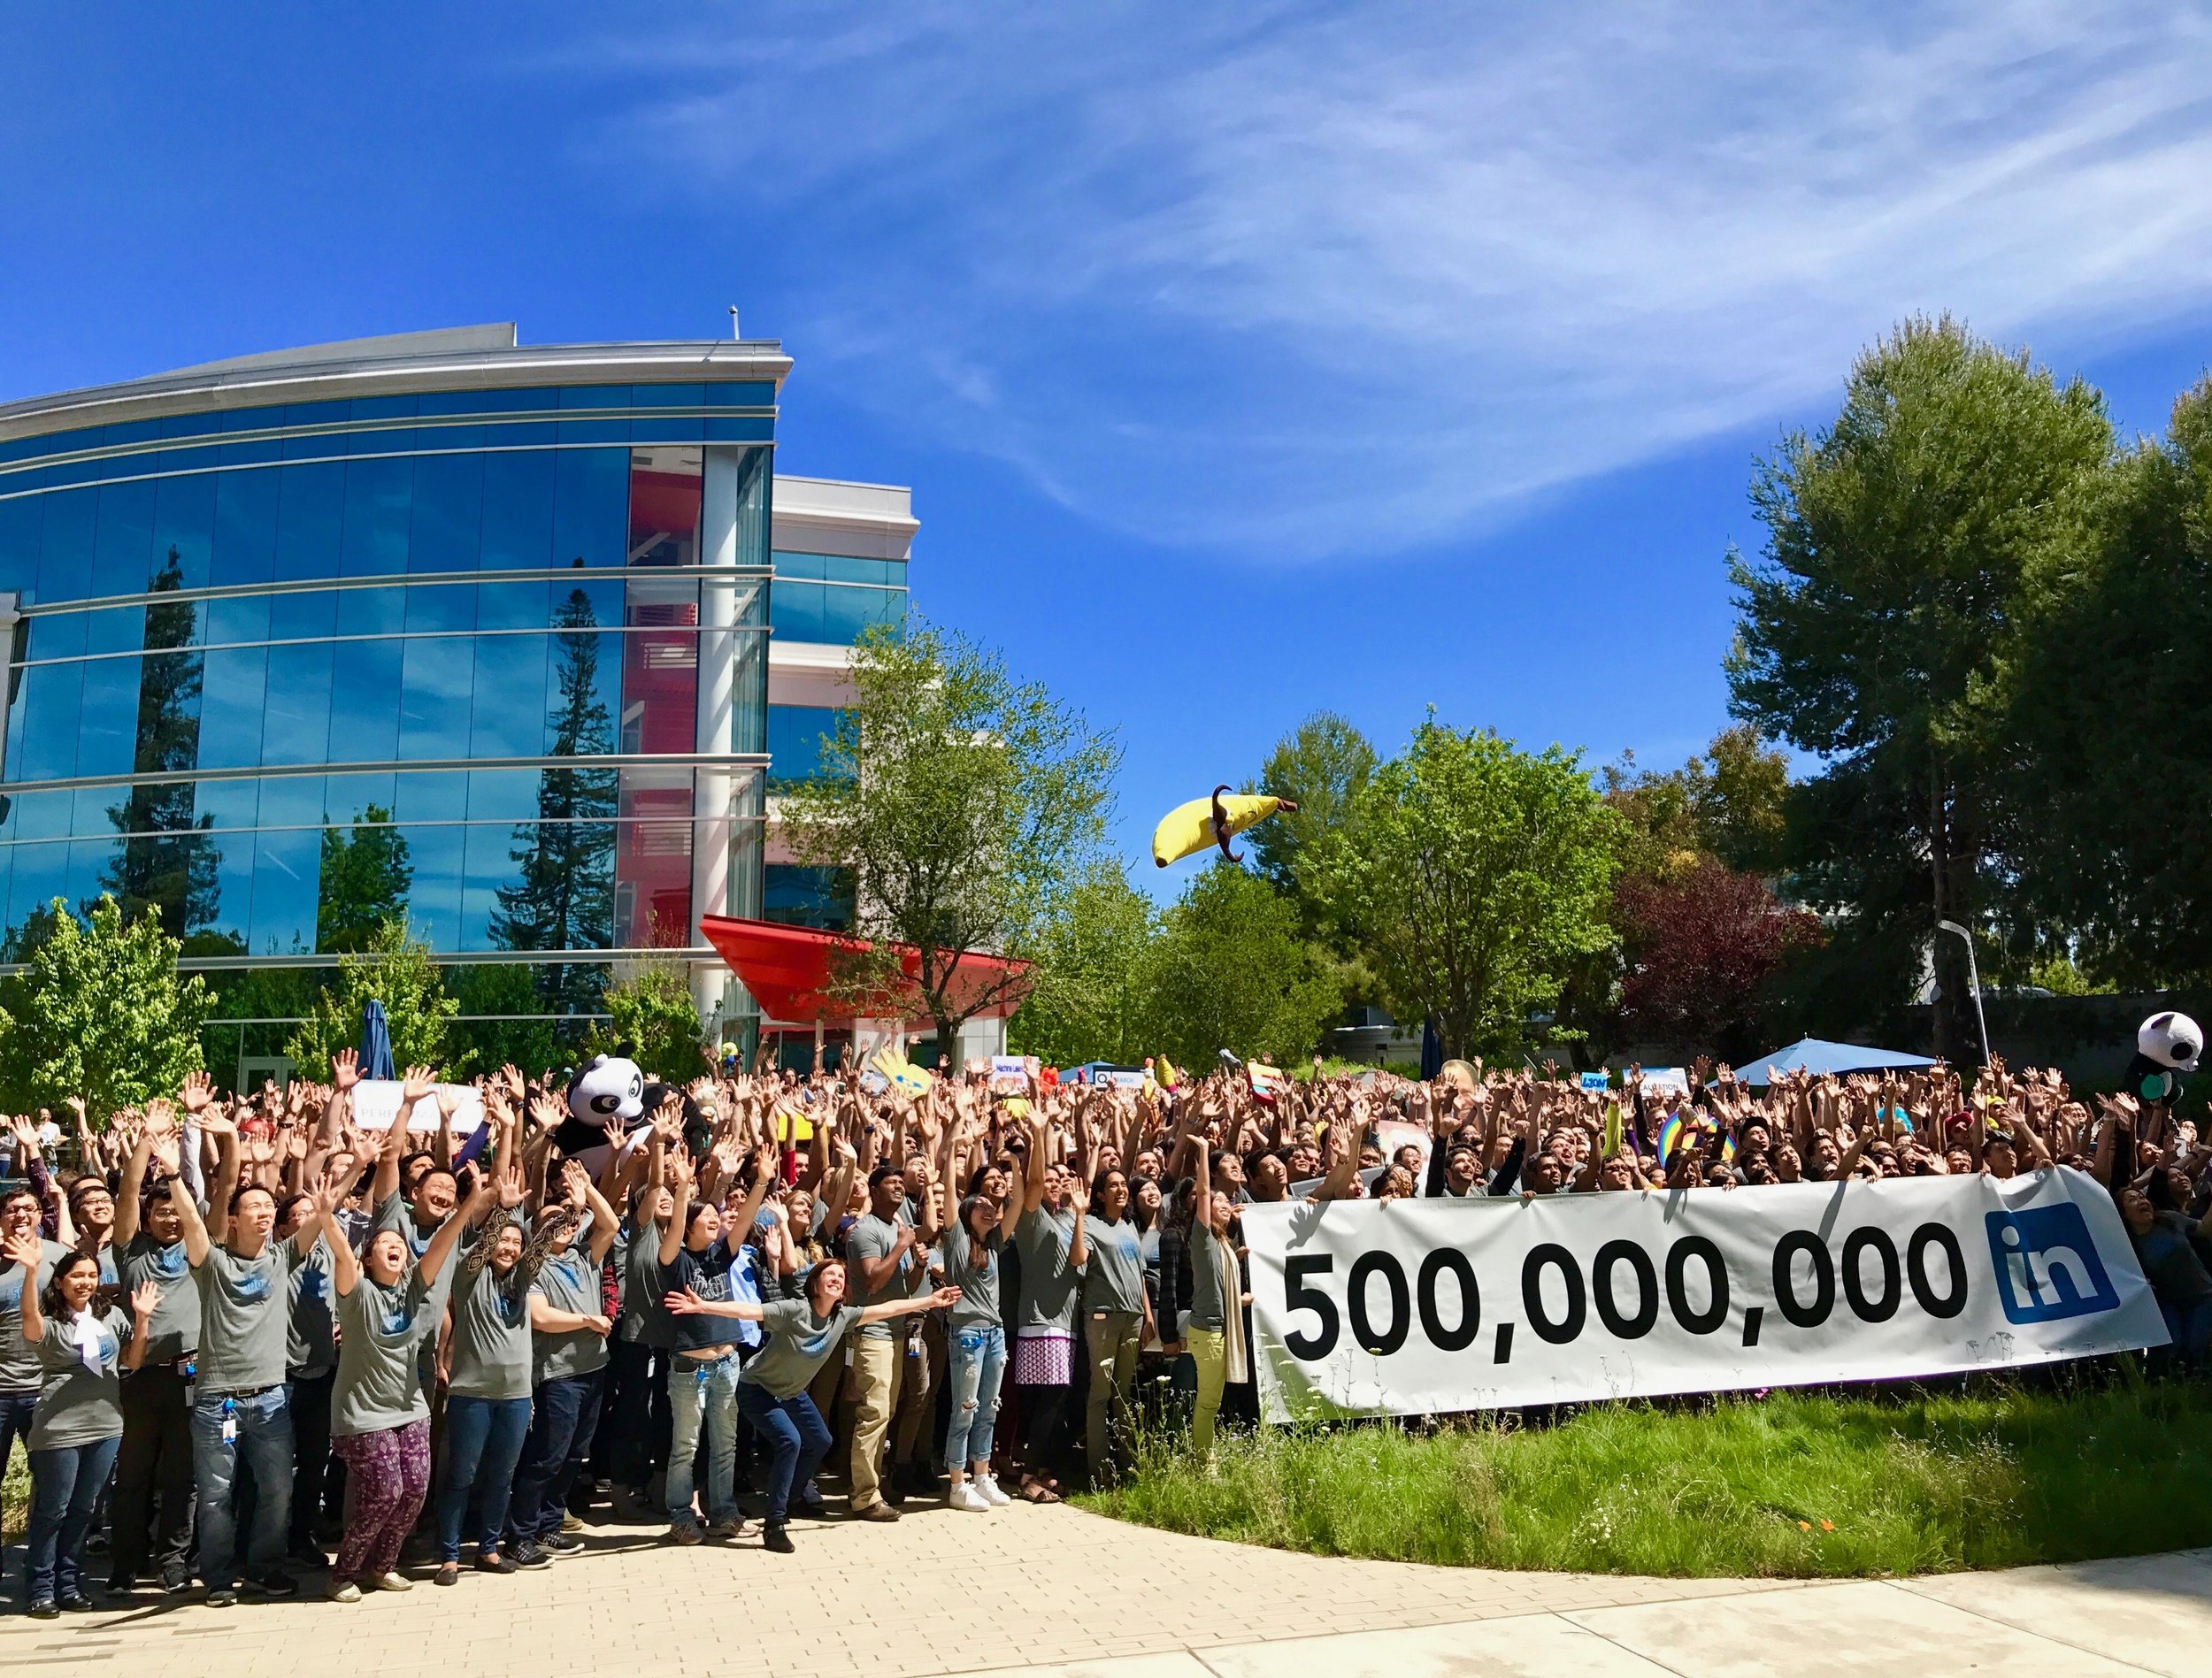 Los Gatos DJ - LinkedIn 500 million members celebration 2017.jpg